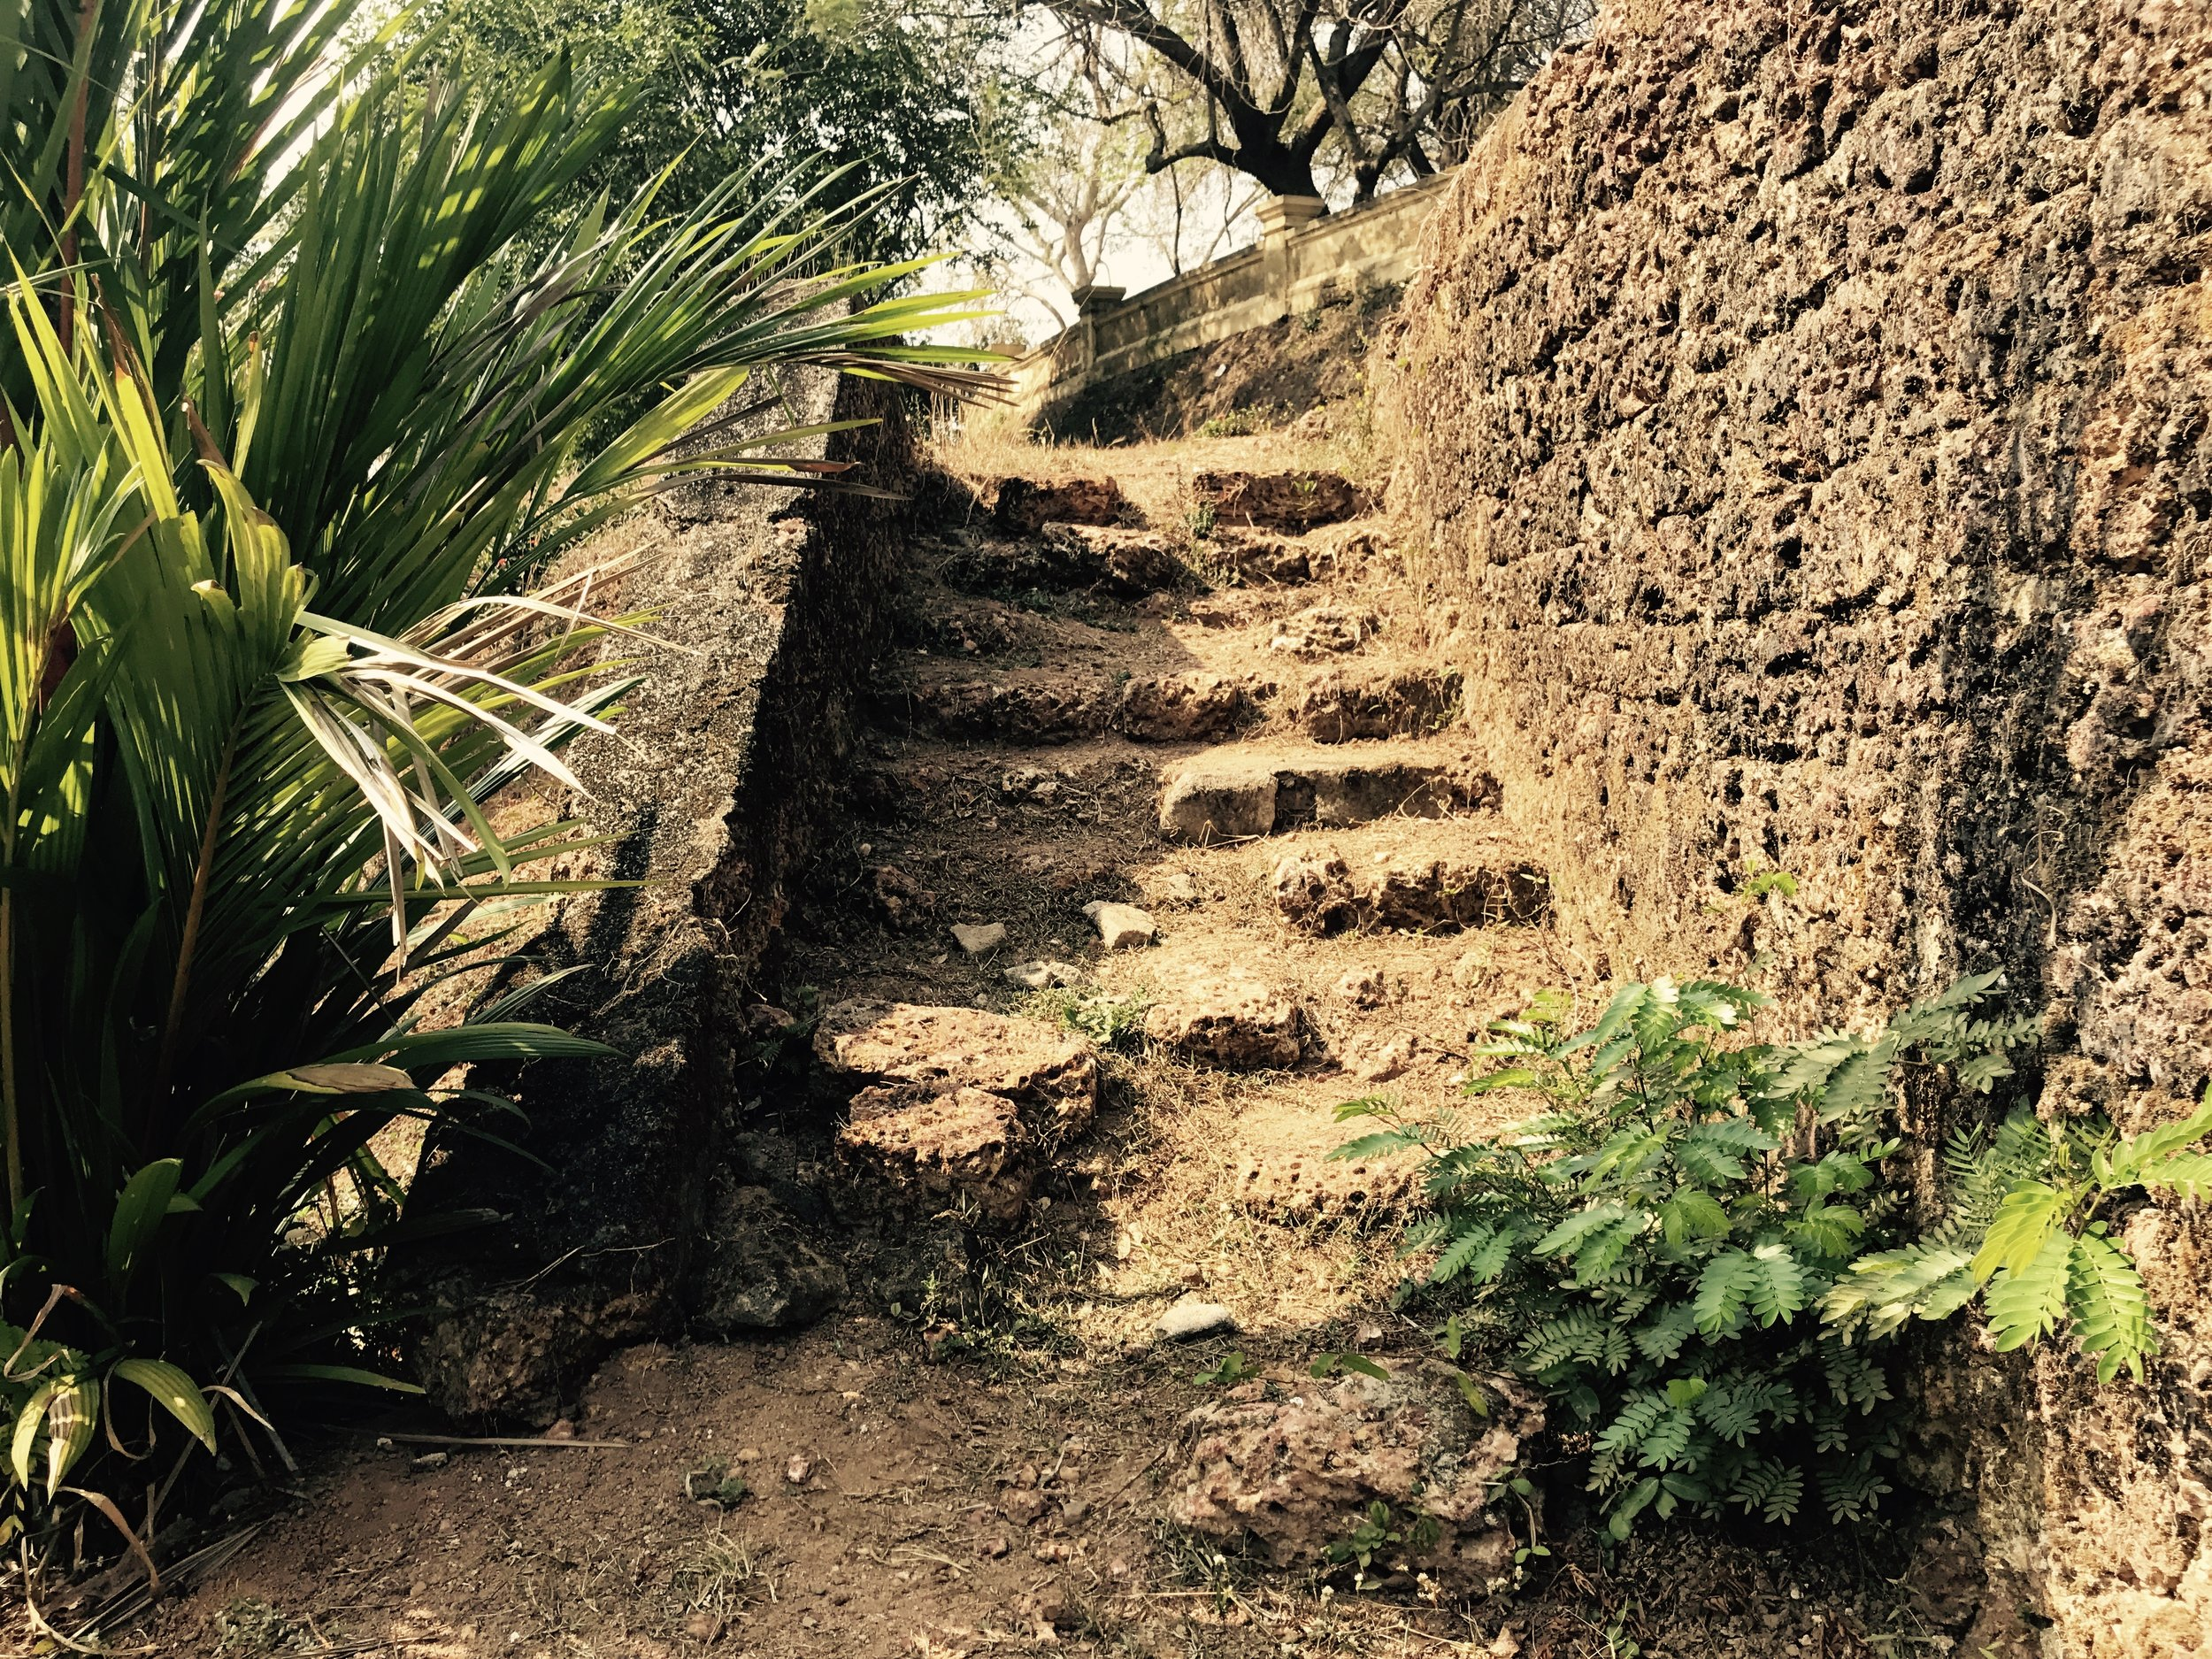 Stairway Leading to the Hideout